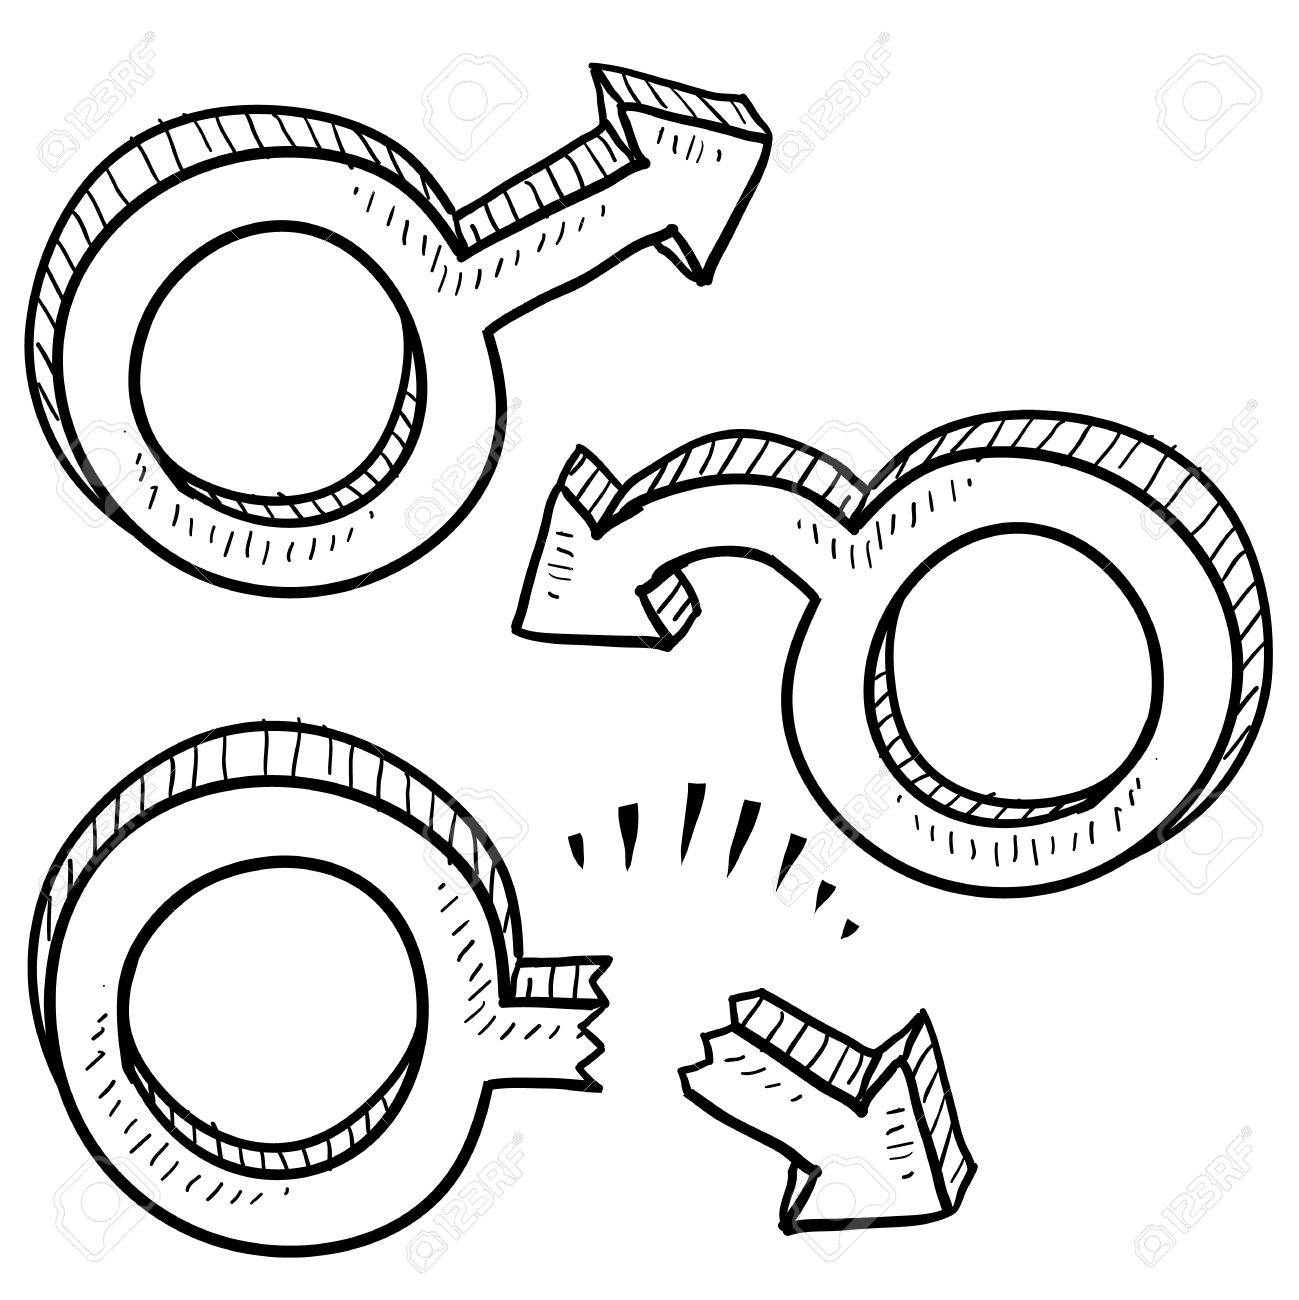 Doodle style male gender symbols in various states including virile, limp, and broken to indicate male ego or sexual performance Stock Vector - 14460849